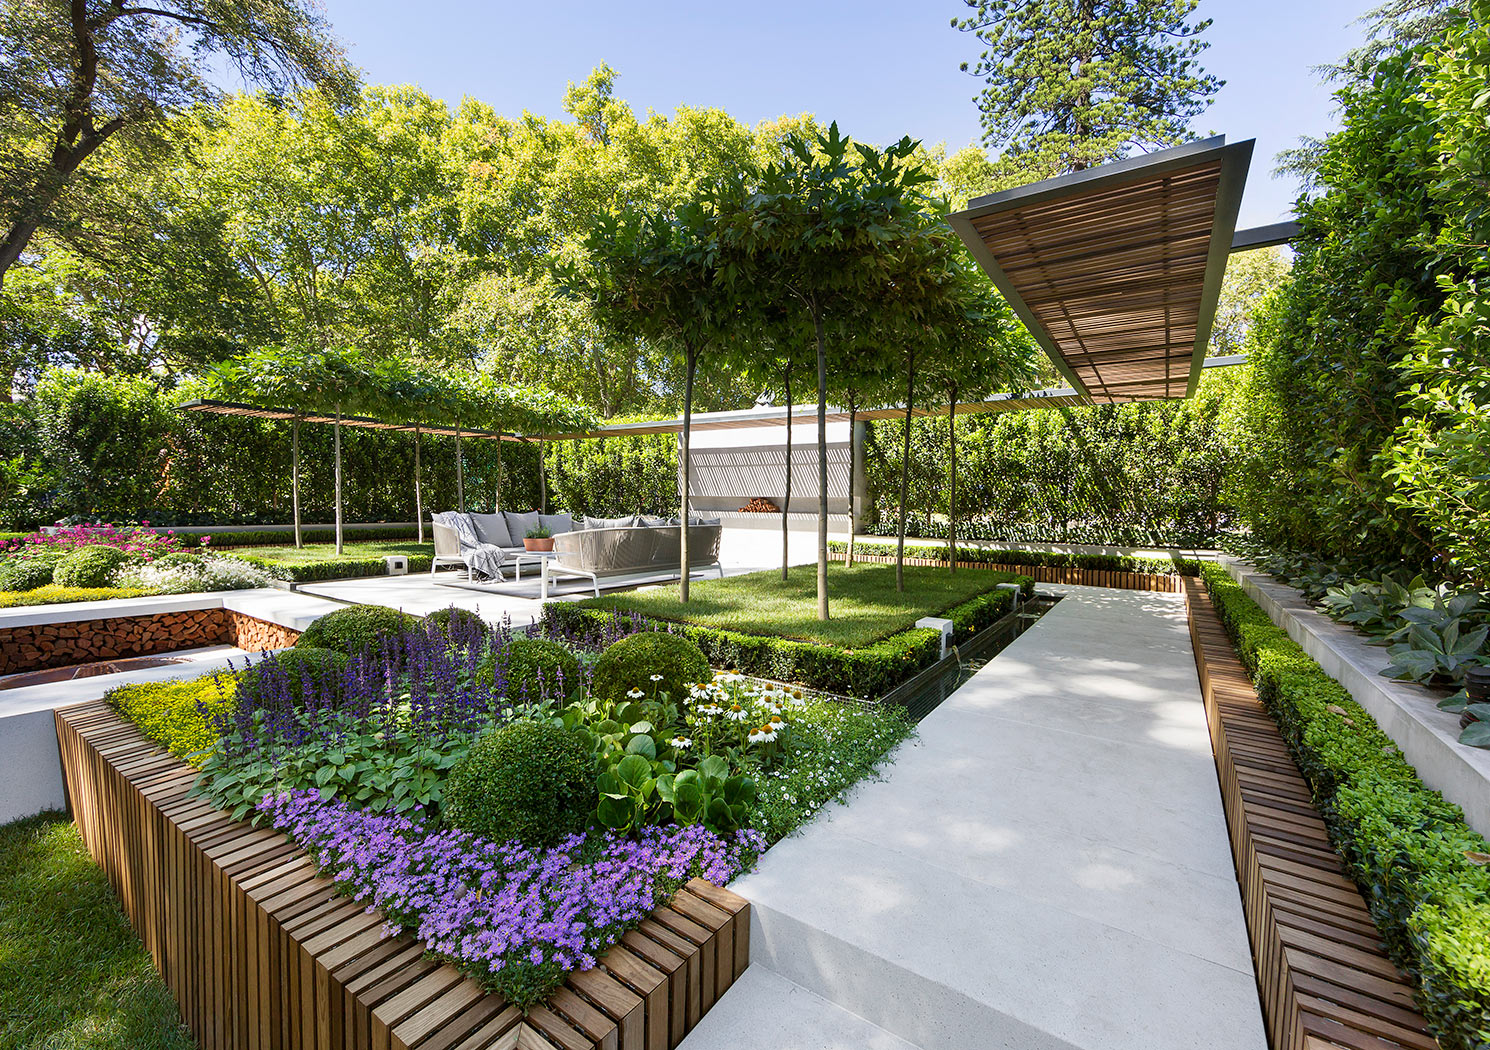 Landscape garden designer melbourne nathan burkett design for Outdoor pictures for gardens